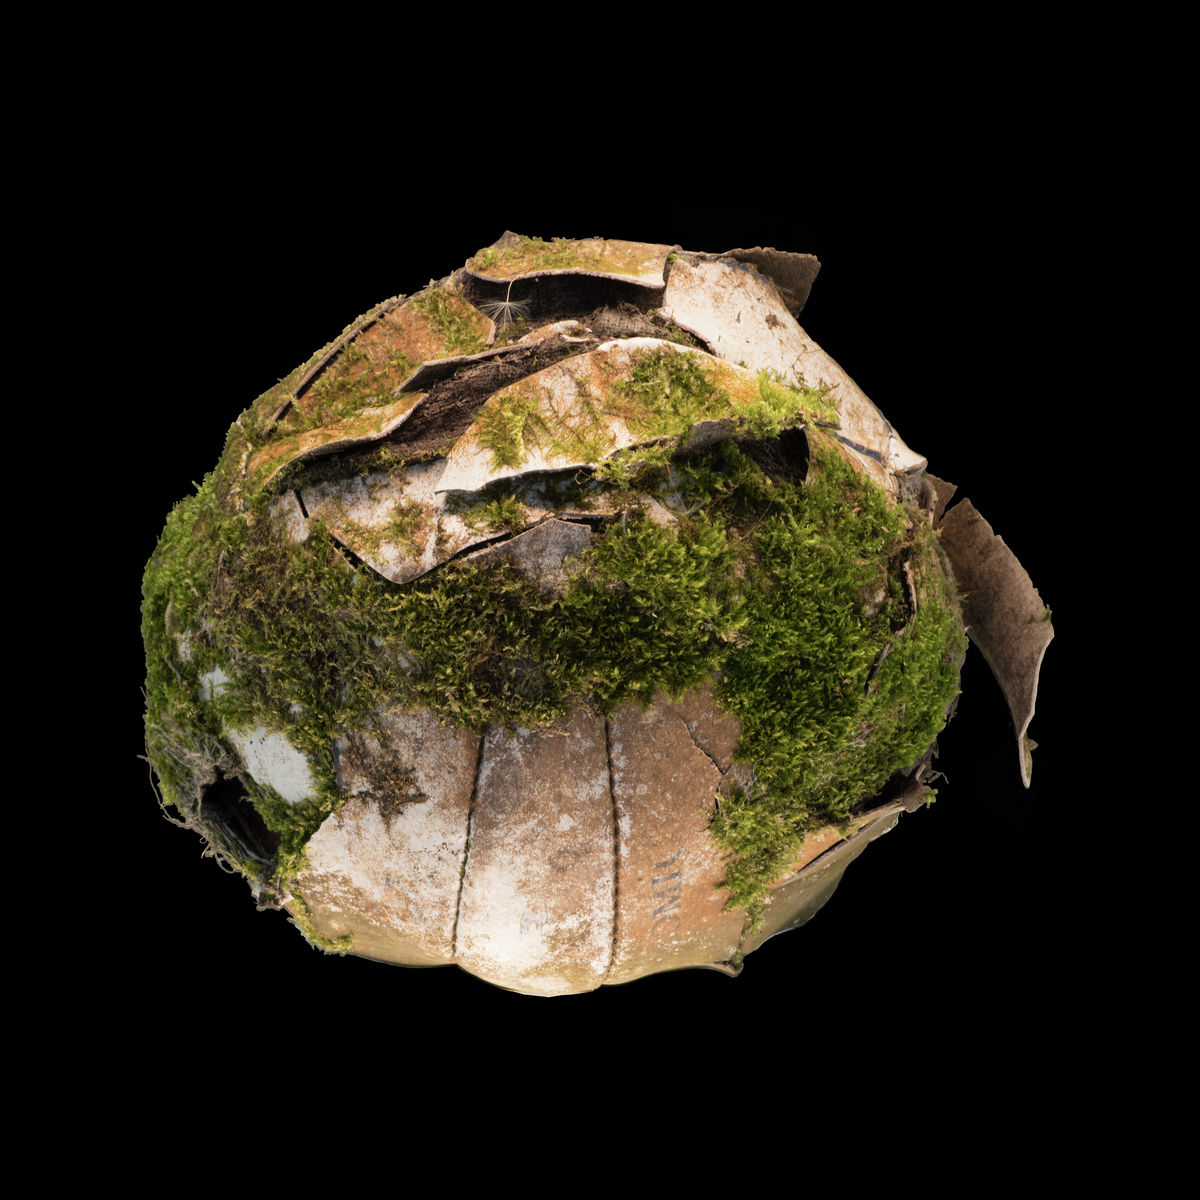 Moss covered football on black background print